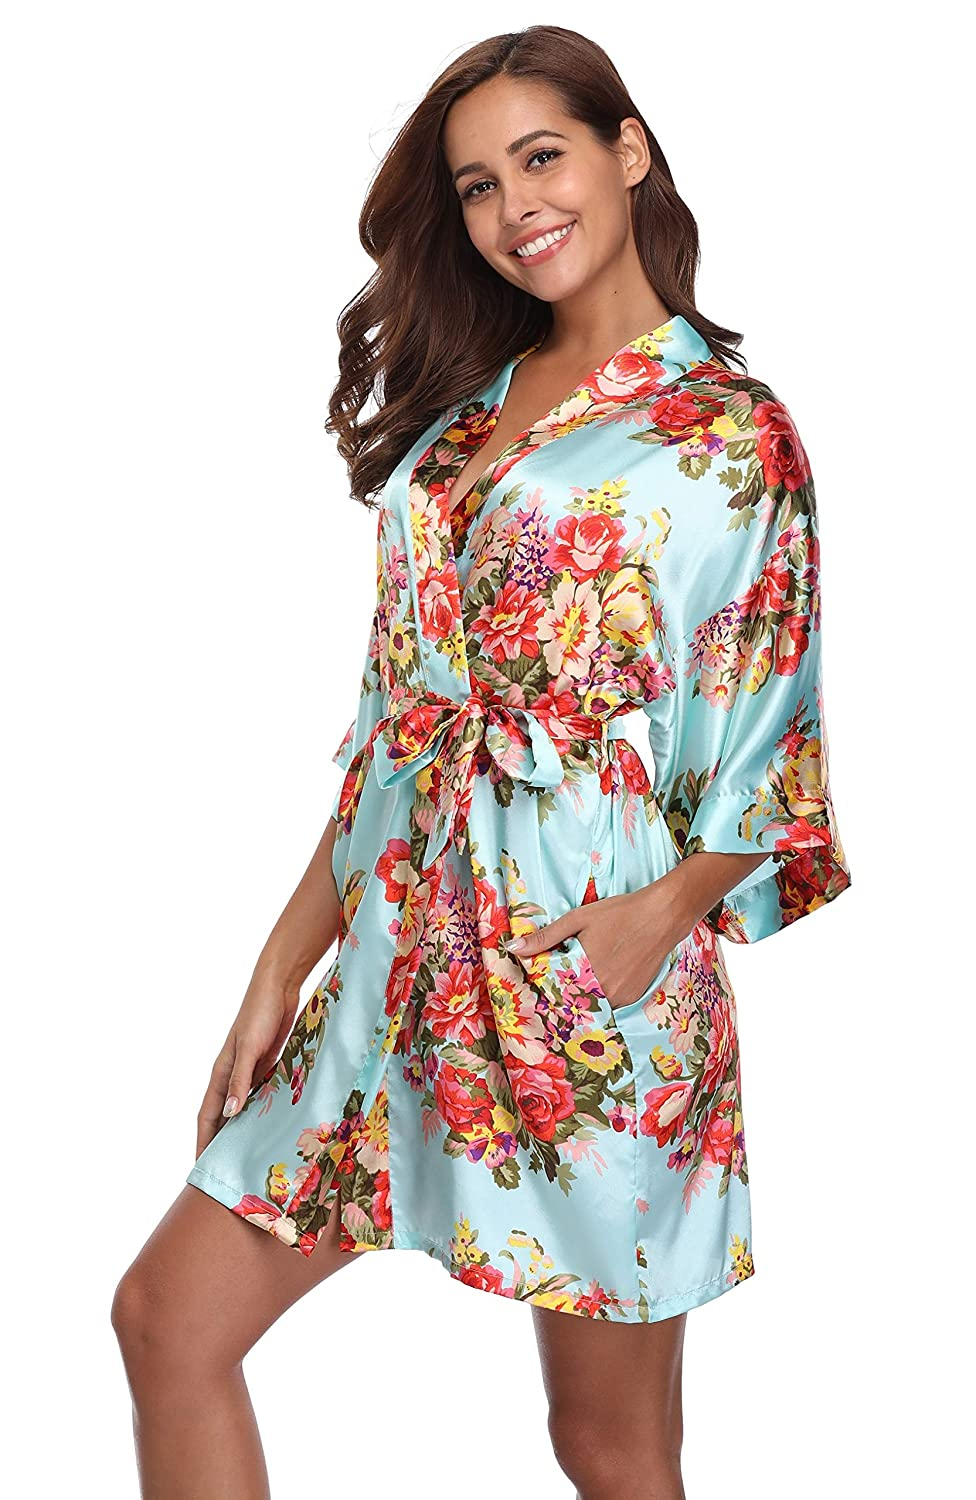 Light bluee MASELEY Women's Floral Satin Kimono Short Style Bridesmaids Robes with Pockets for Wedding Party